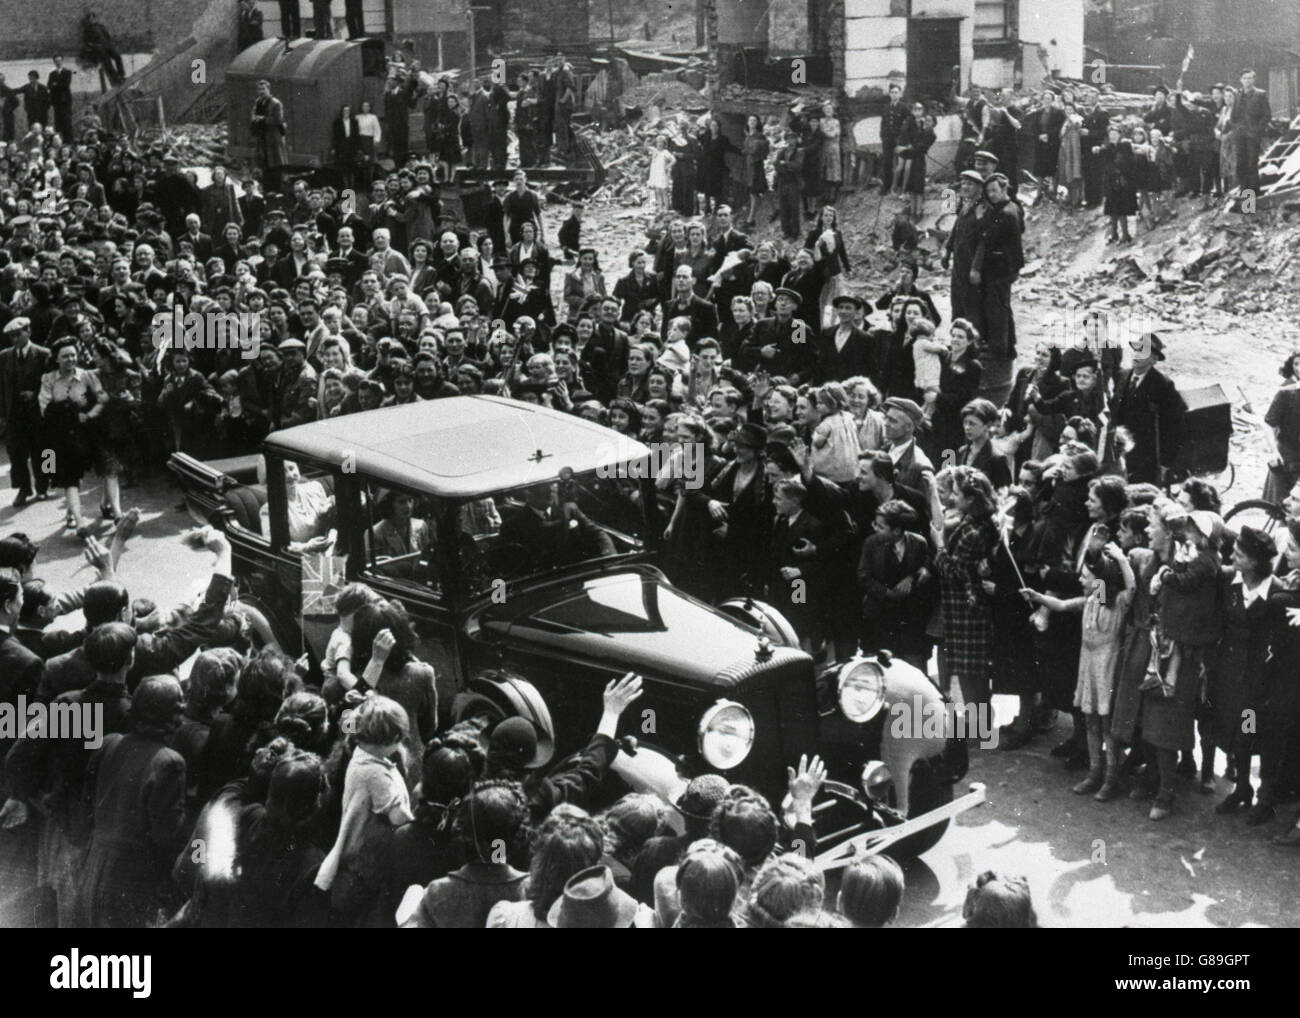 King and Queen Visit East End after Blitz - Stock Image